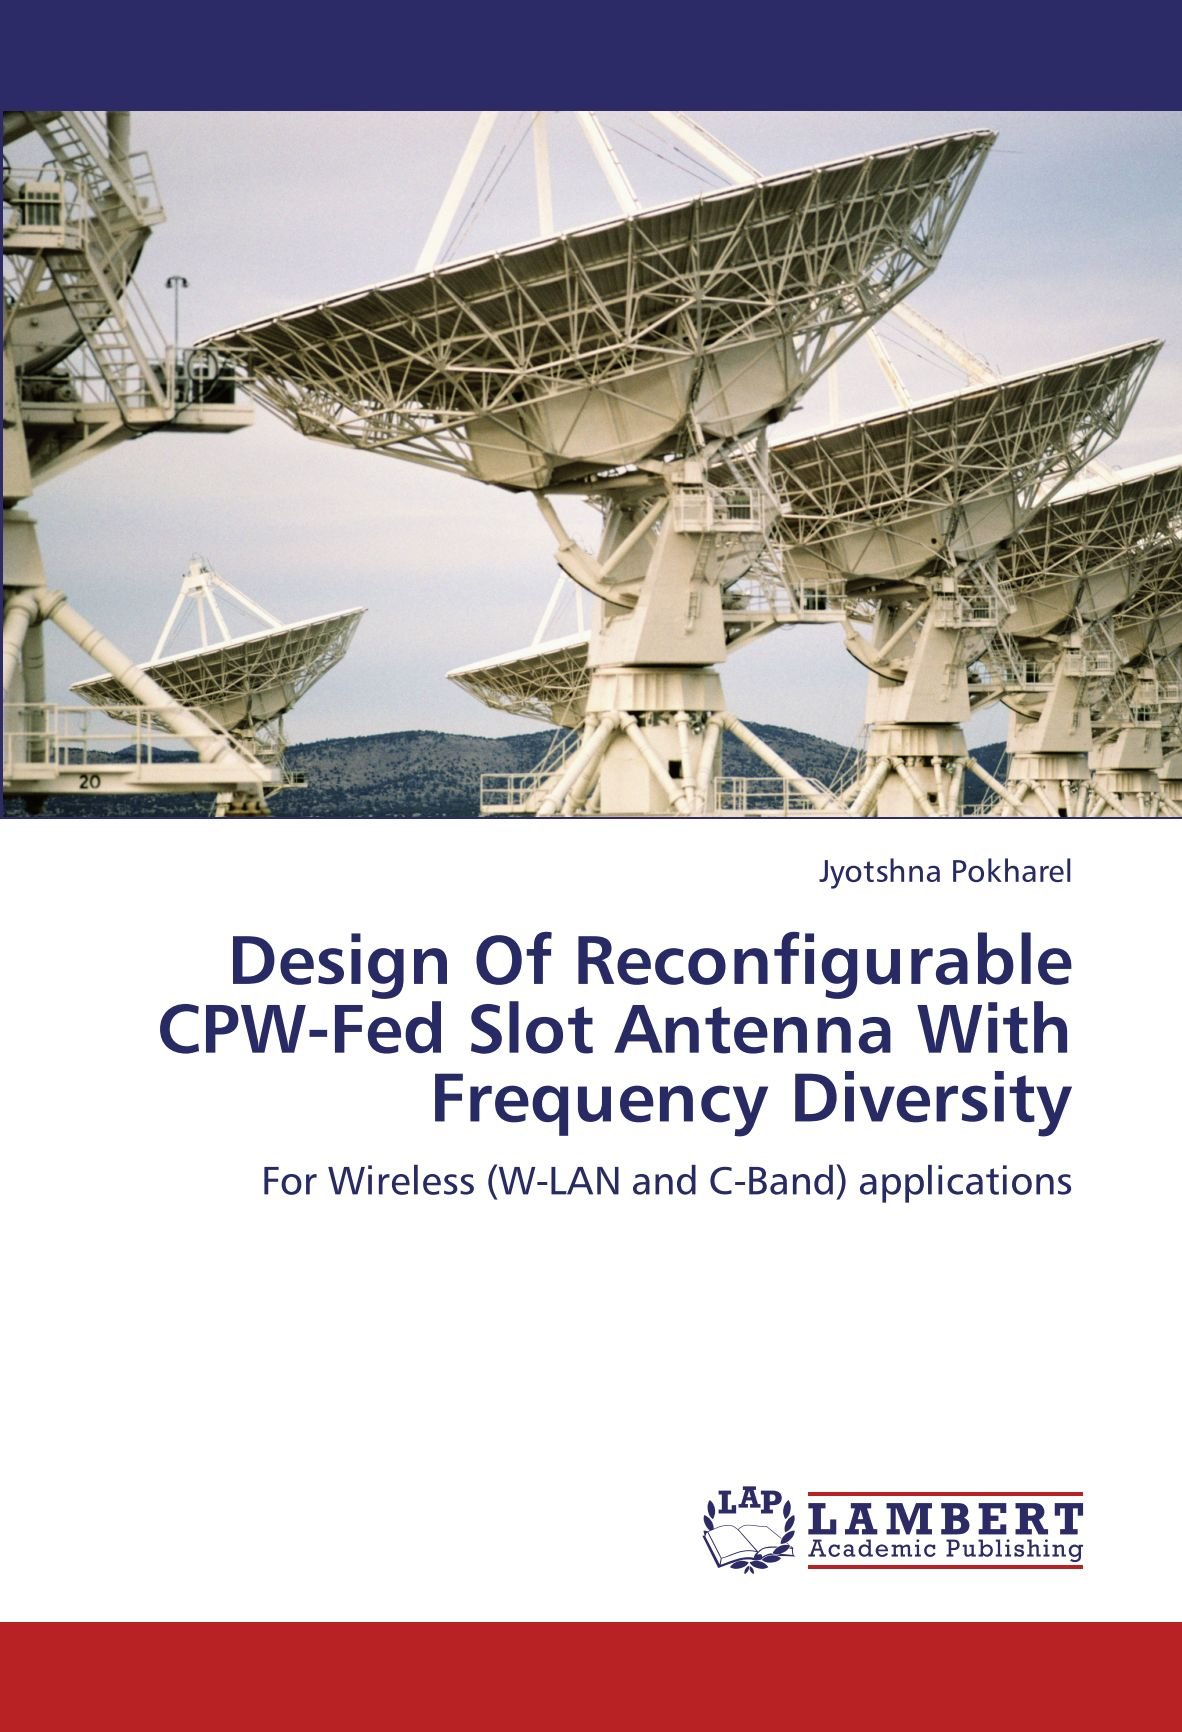 Design Of Reconfigurable CPW-Fed Slot Antenna With Frequency ...